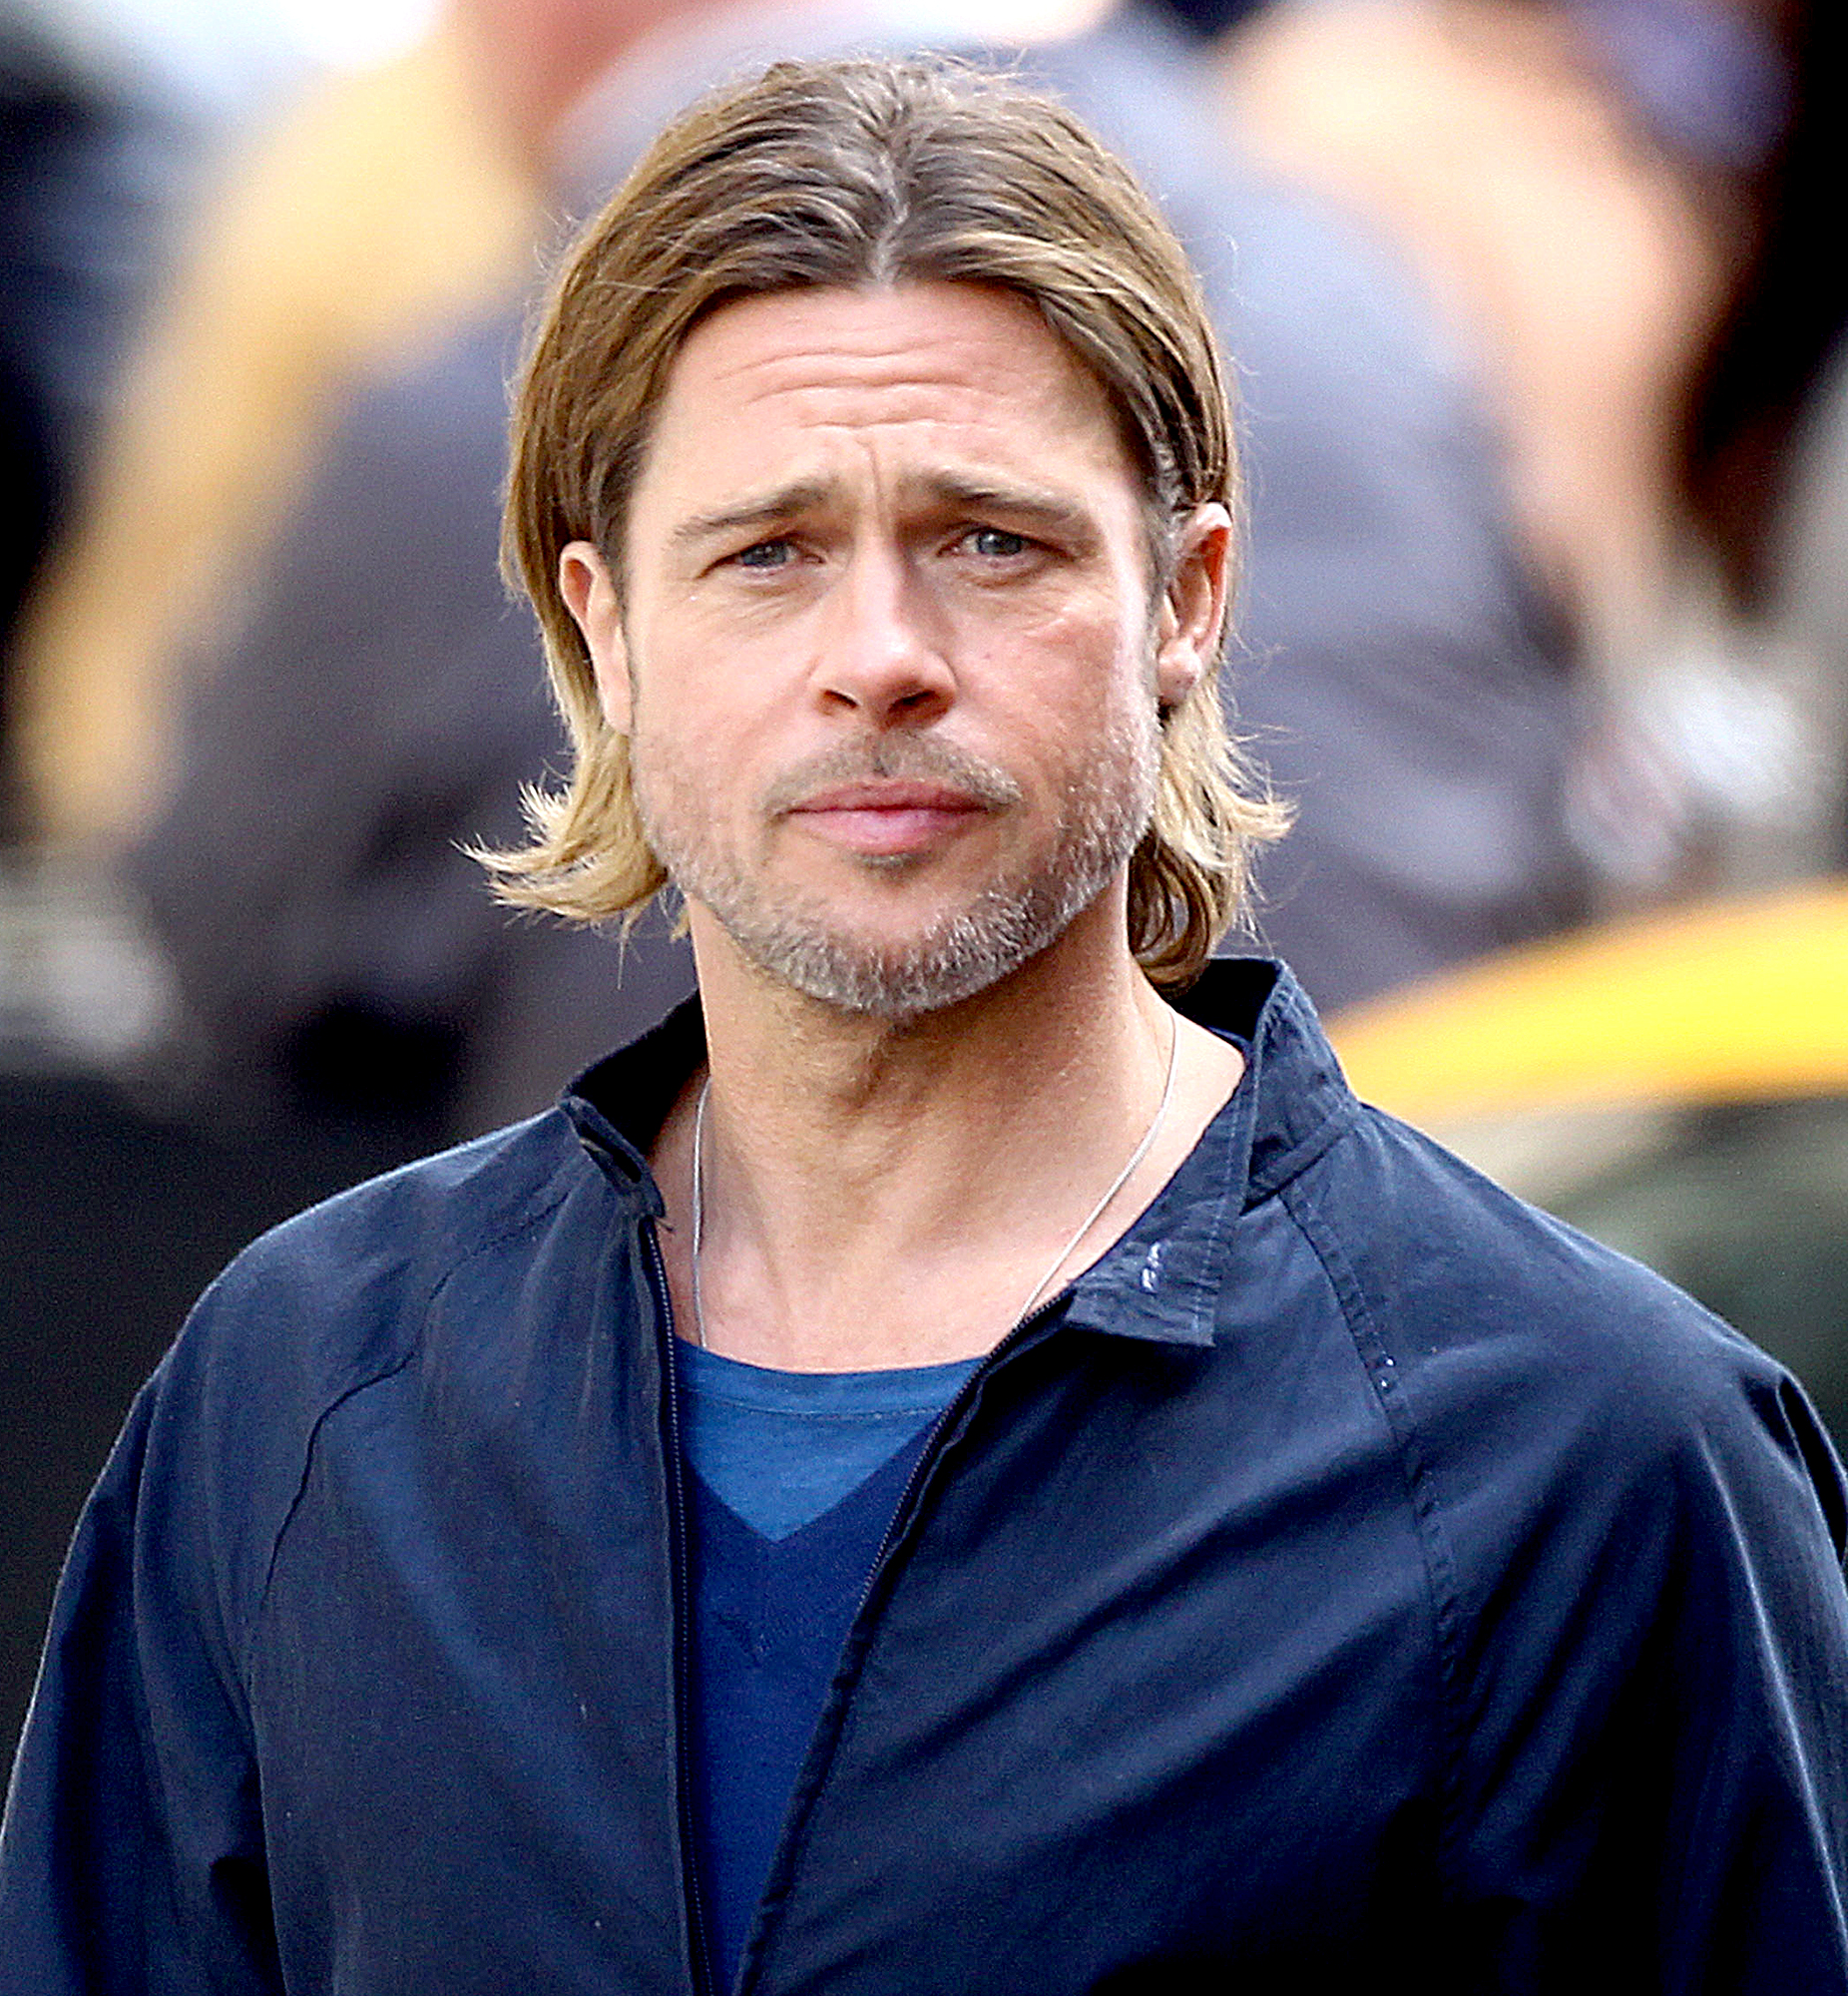 """jennifer-aniston-brad-pitt-divorce-relationship - Pitt explained how his personal feelings about where he was mentally during his marriage to Aniston. """"I spent the '90s trying to hide out, trying to duck the full celebrity cacophony. I started to get sick of myself sitting on a couch, holding a joint, hiding out. It started feeling pathetic. It became very clear to me that I was intent on trying to find a movie about an interesting life, but I wasn't living an interesting life myself,"""" the Fury actor told Parade in September 2011."""